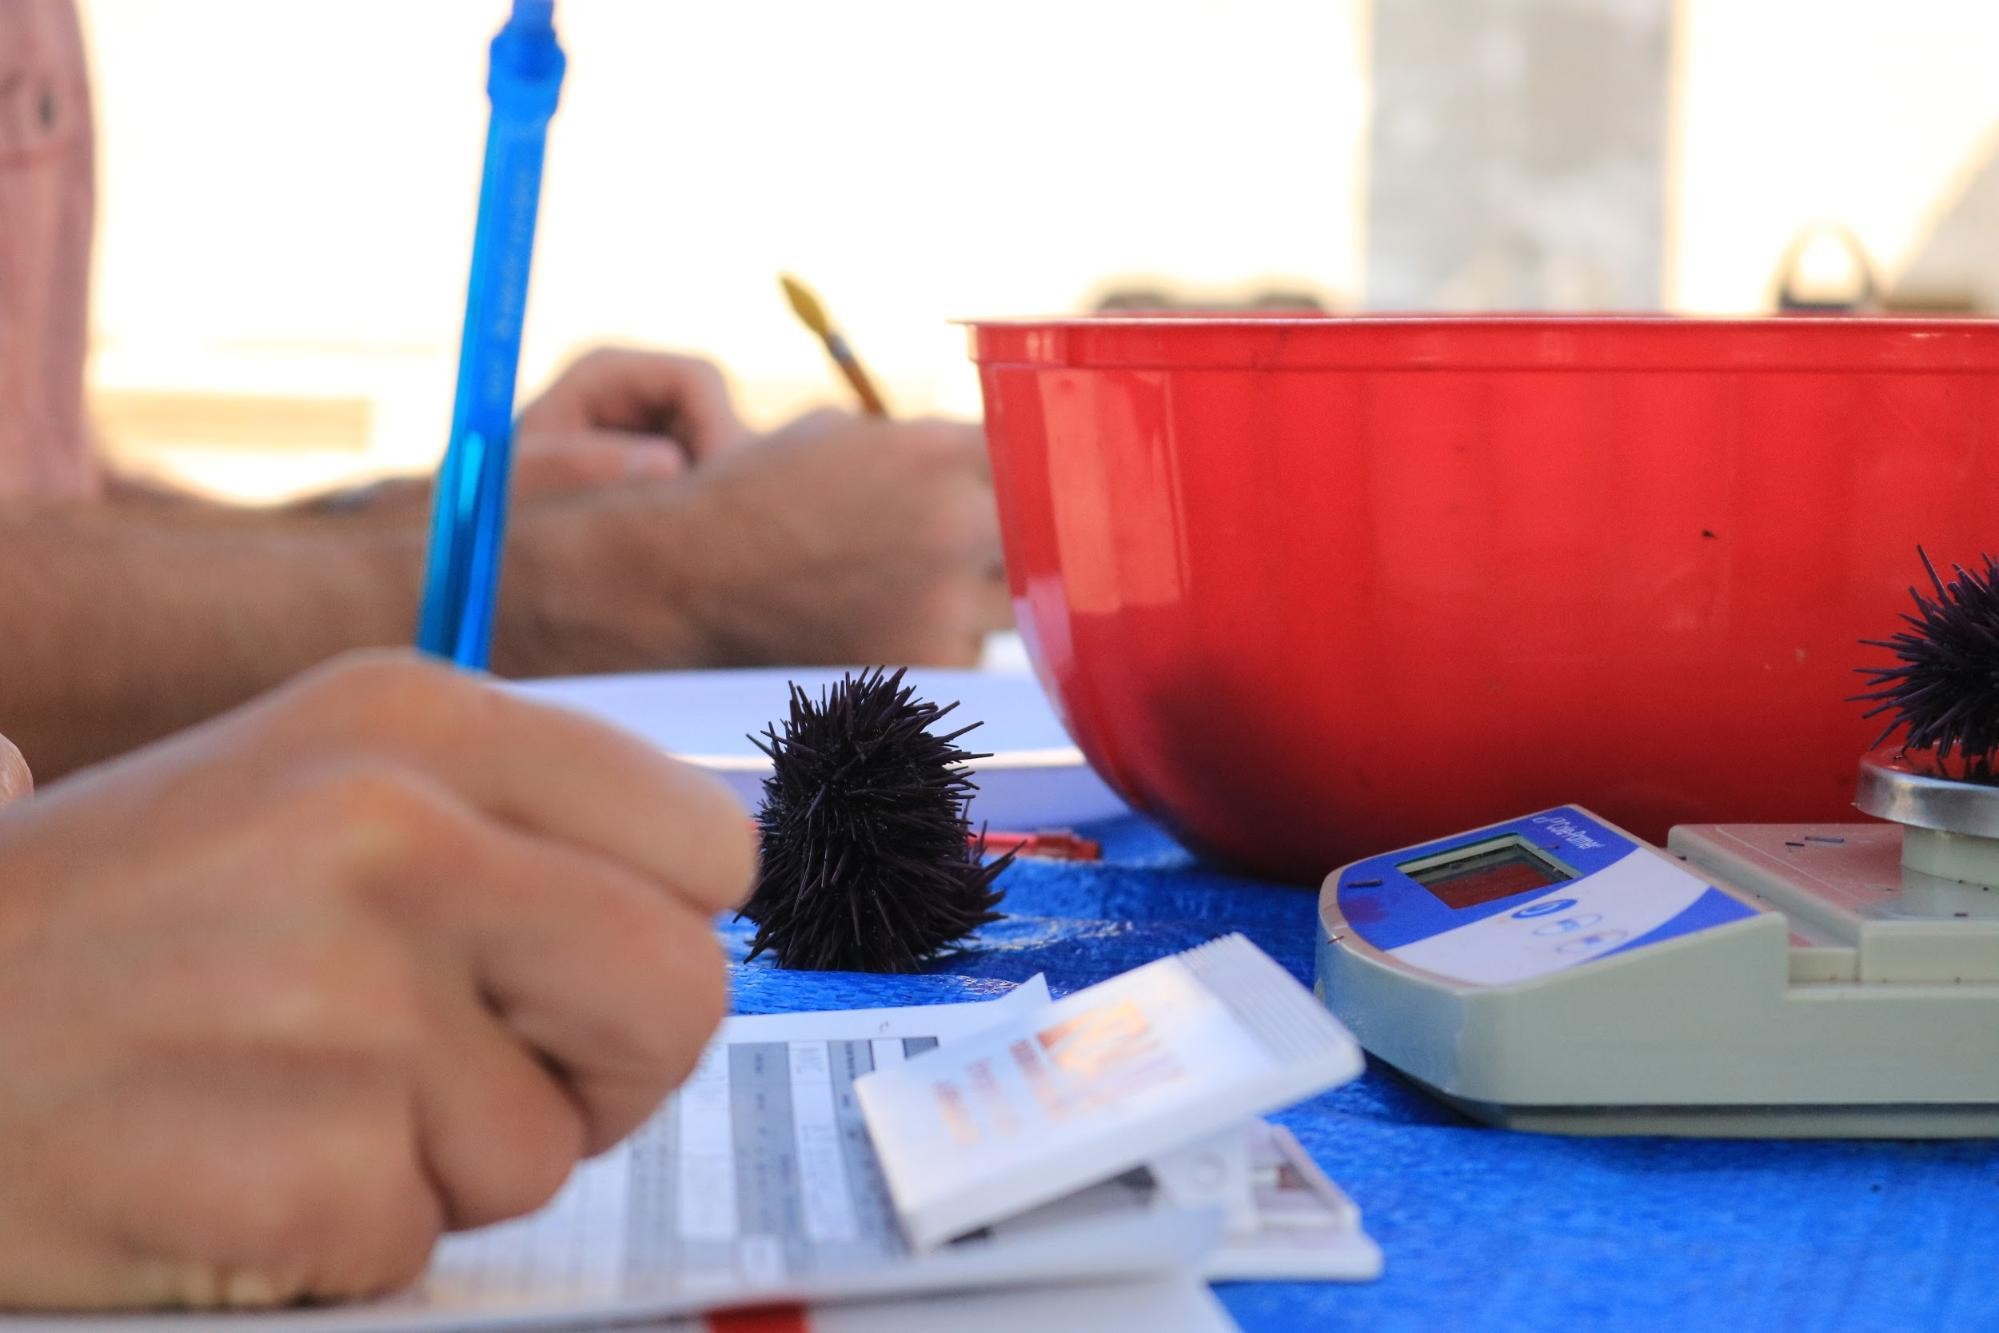 A close-up of hands holding a blue pen writing on a sheet of paper. On the same table is a blue cloth with a scale and a red plastic bowl. On the scale is a purple urchin. Another purple urchin in on the table next to the bowl.